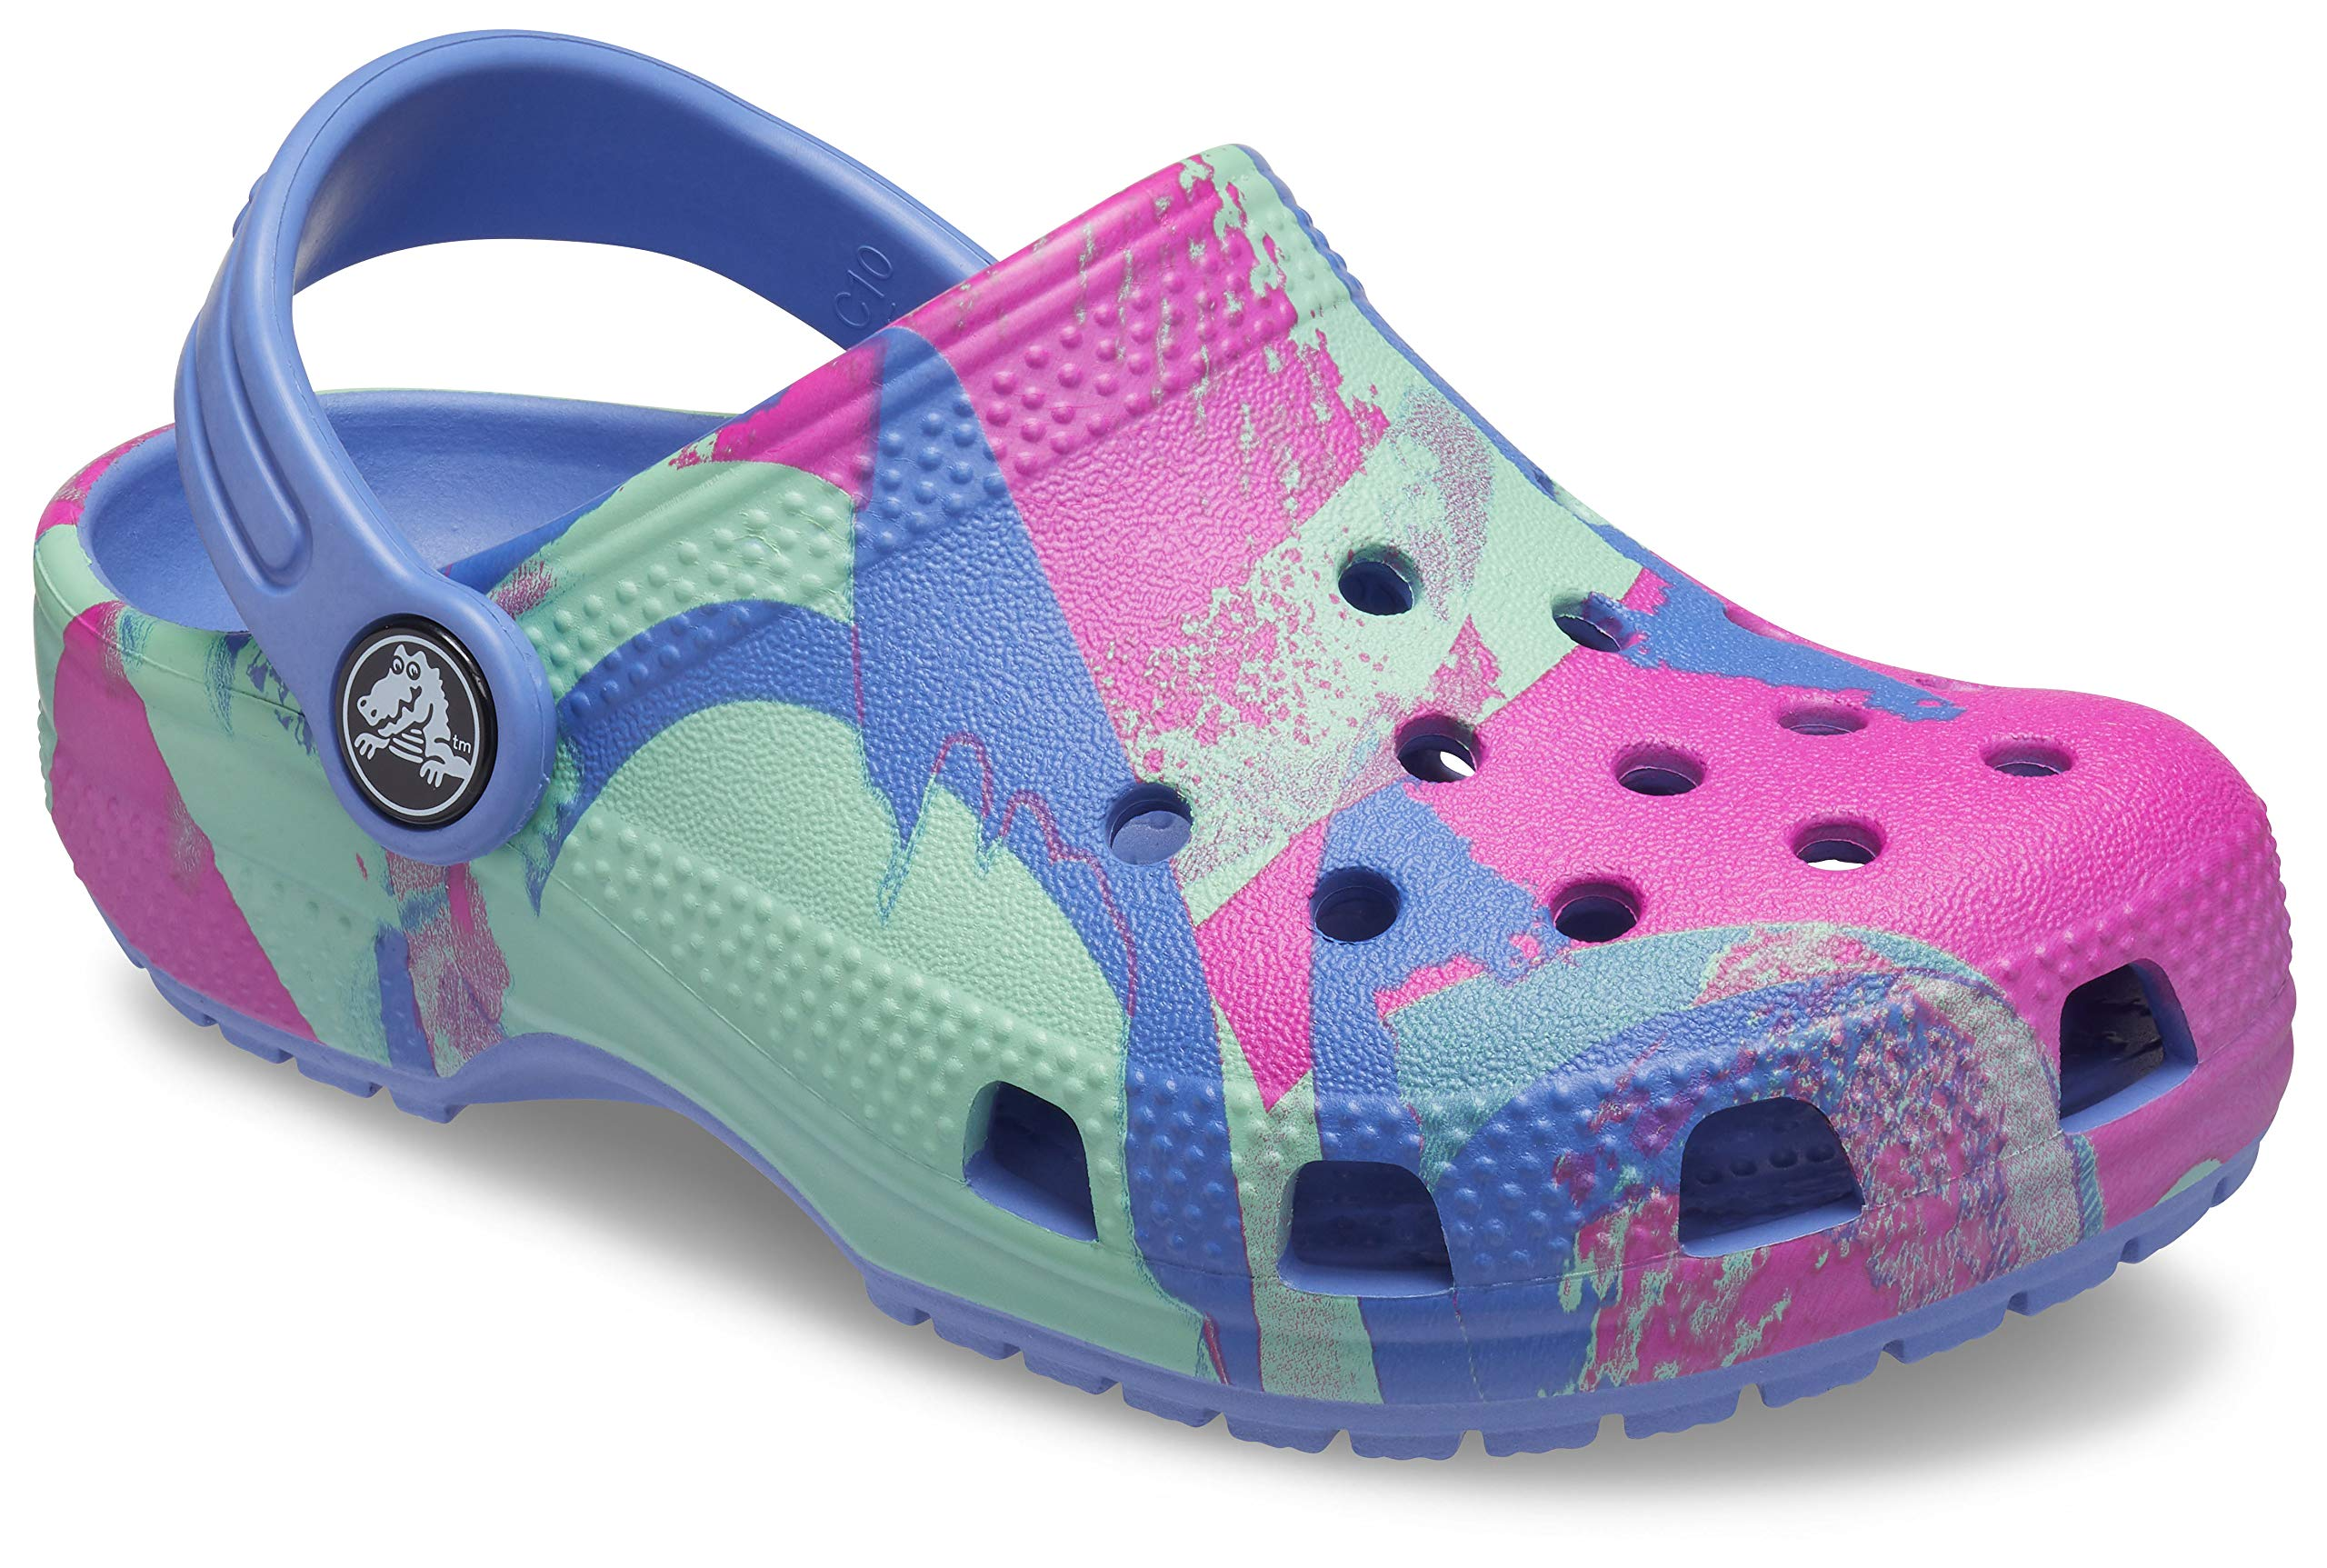 Girls Crocs Kids Classic Graphic Clog Slip On Water Shoe for Toddlers Lightweight Boys